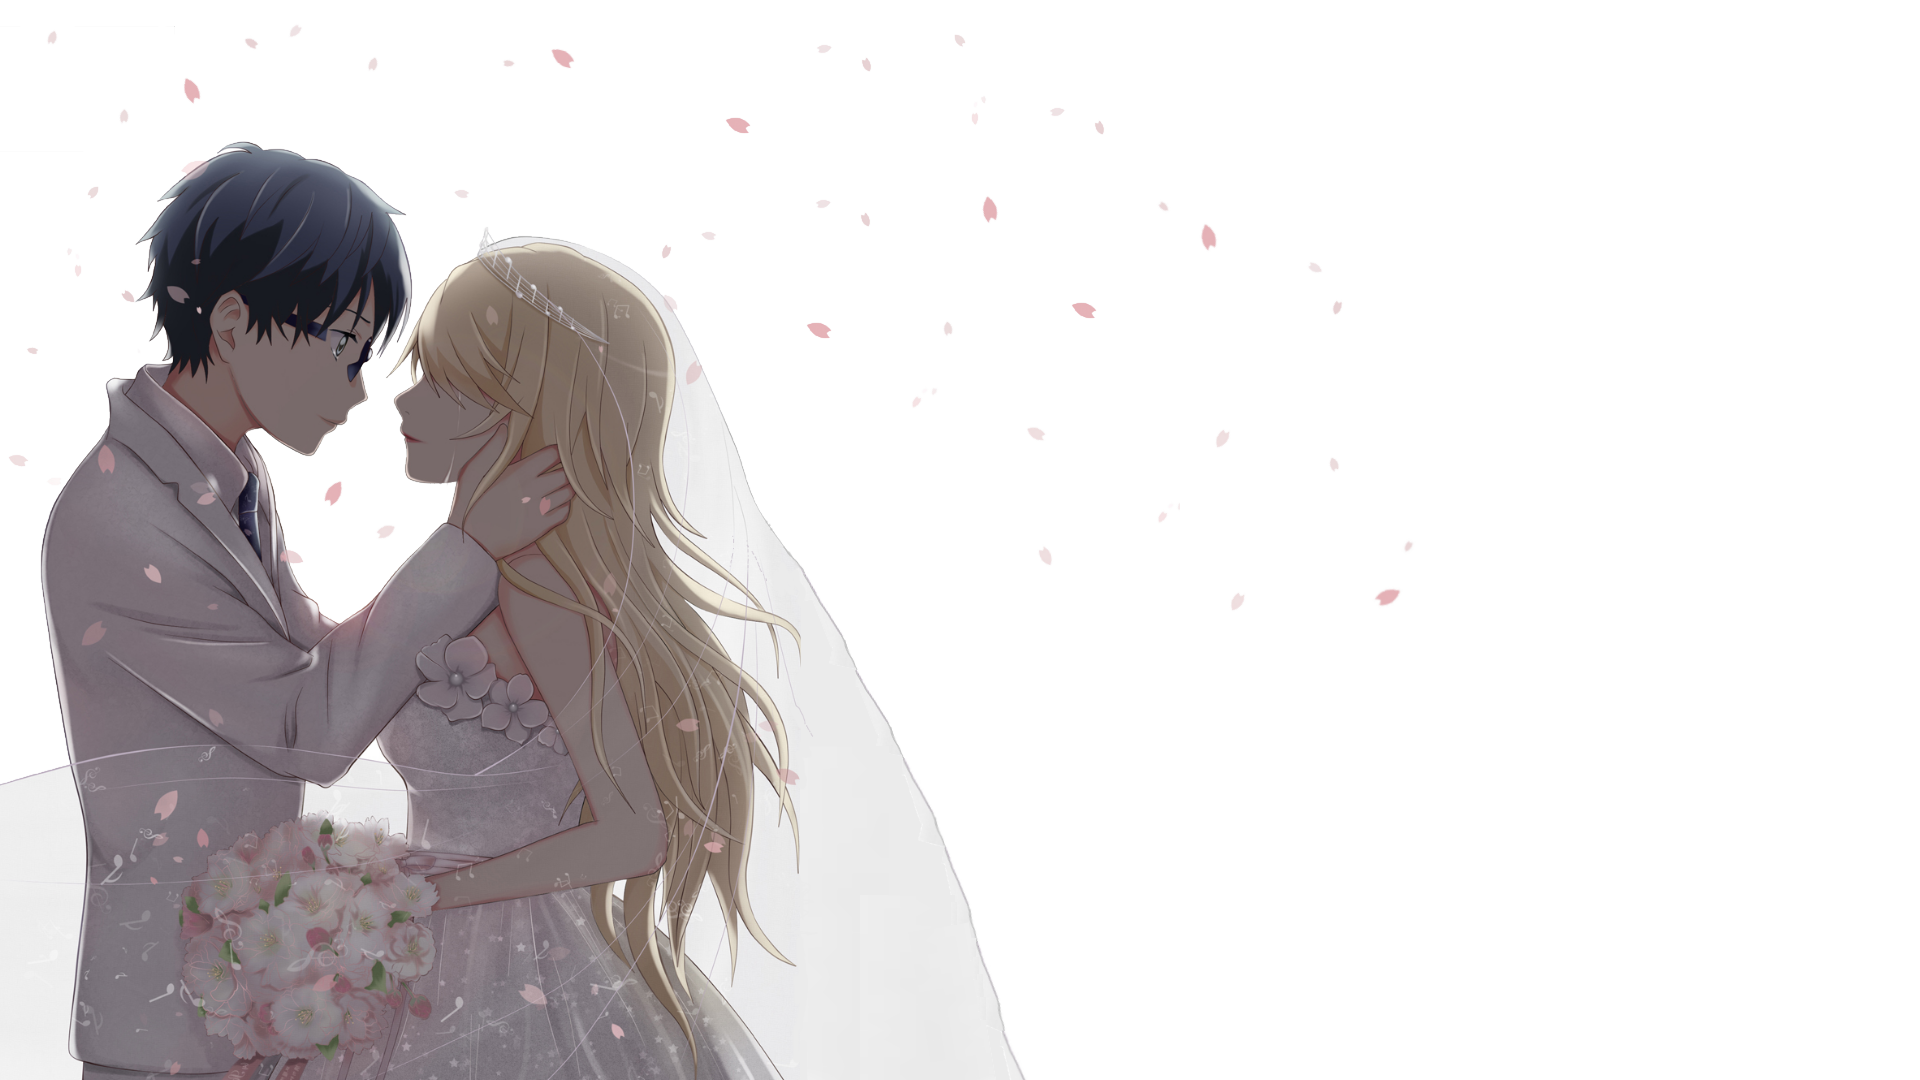 Shigatsu wa kimi no uso (Your lie in april) wallpaper